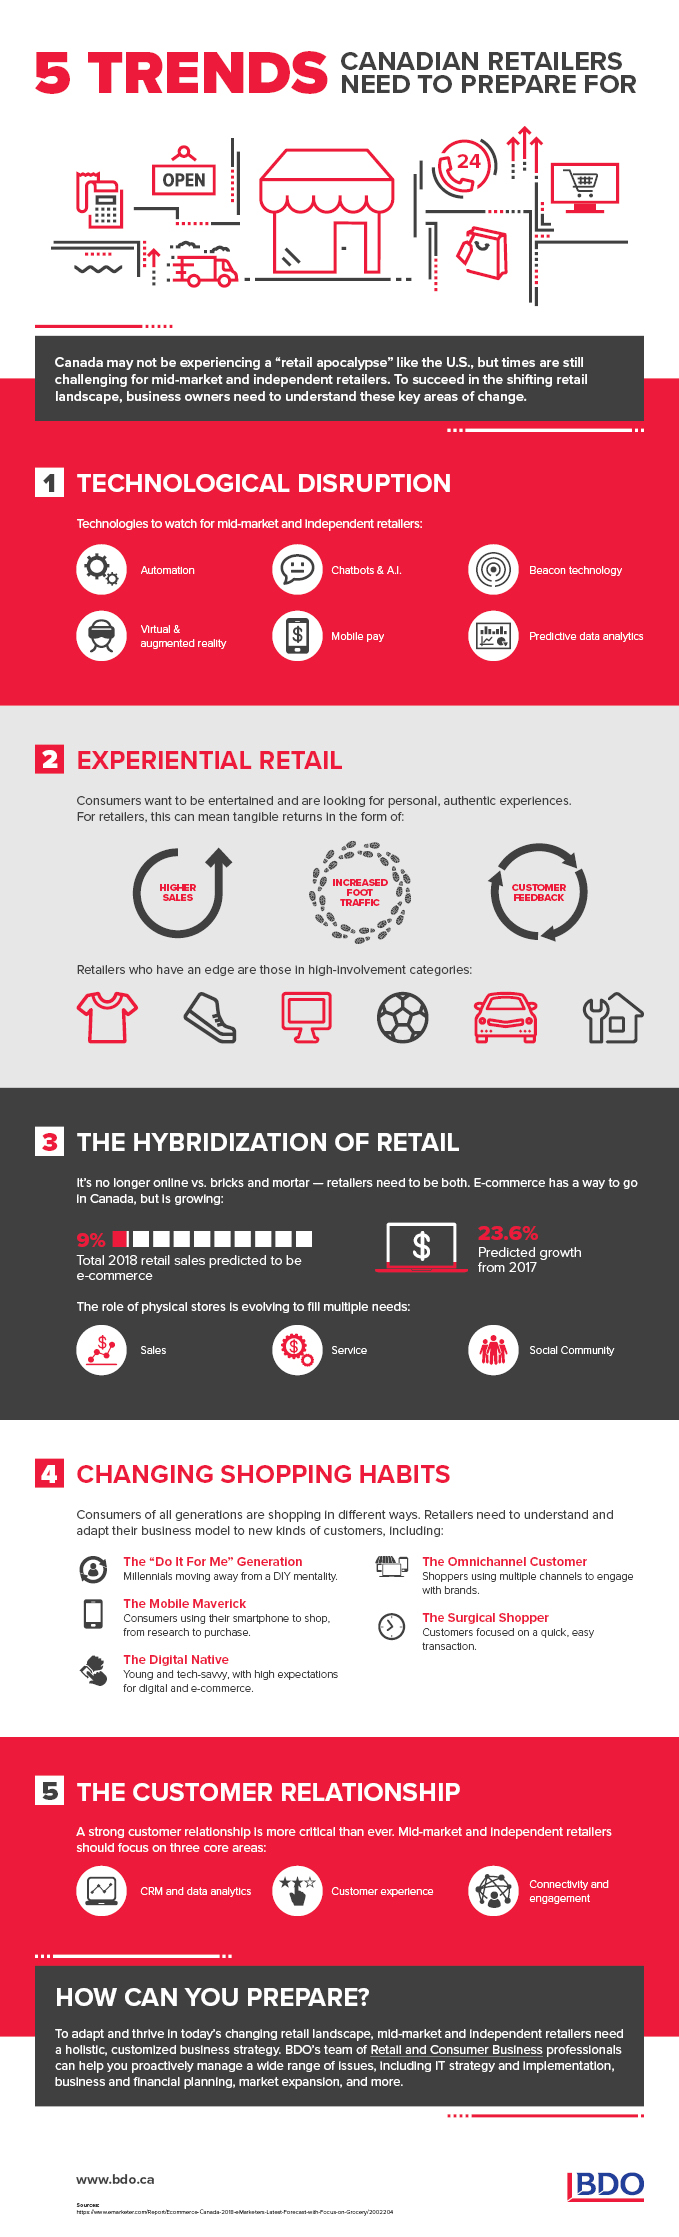 NTL_29Aug18_RCB_Retail-Trends_Infographic_FINAL.jpg